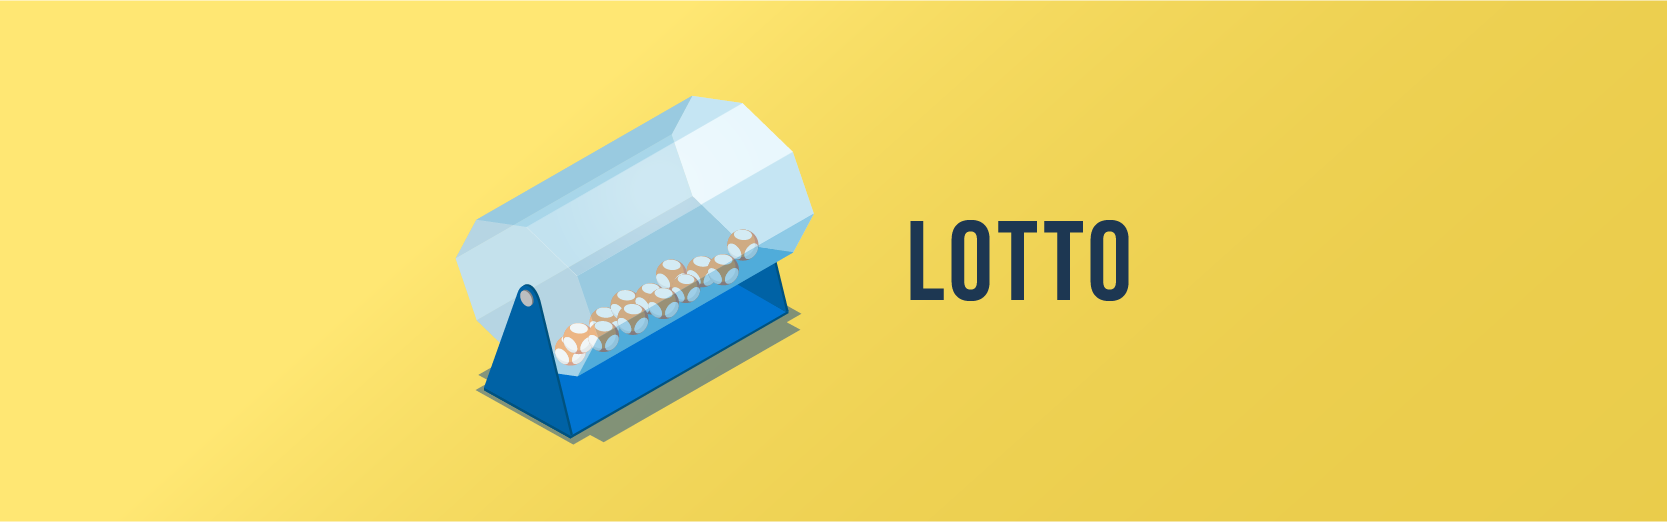 lotto banner